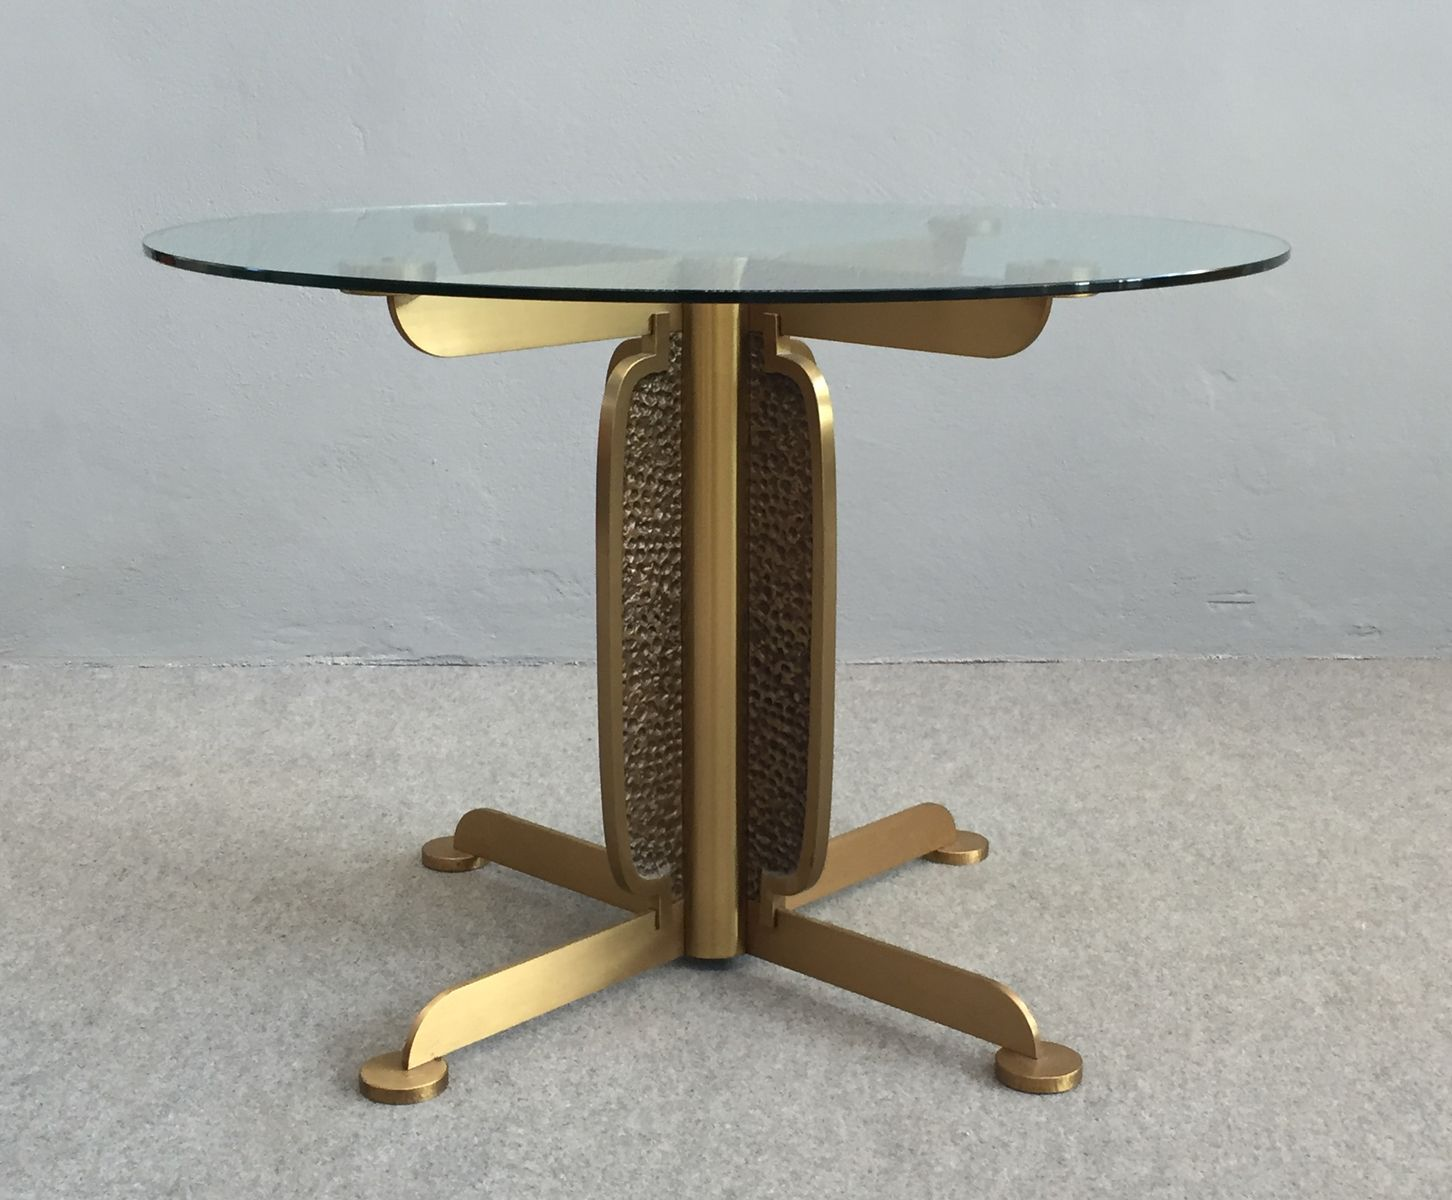 Vintage Round Dining Table By Luciano Frigerio For Sale At Pamono